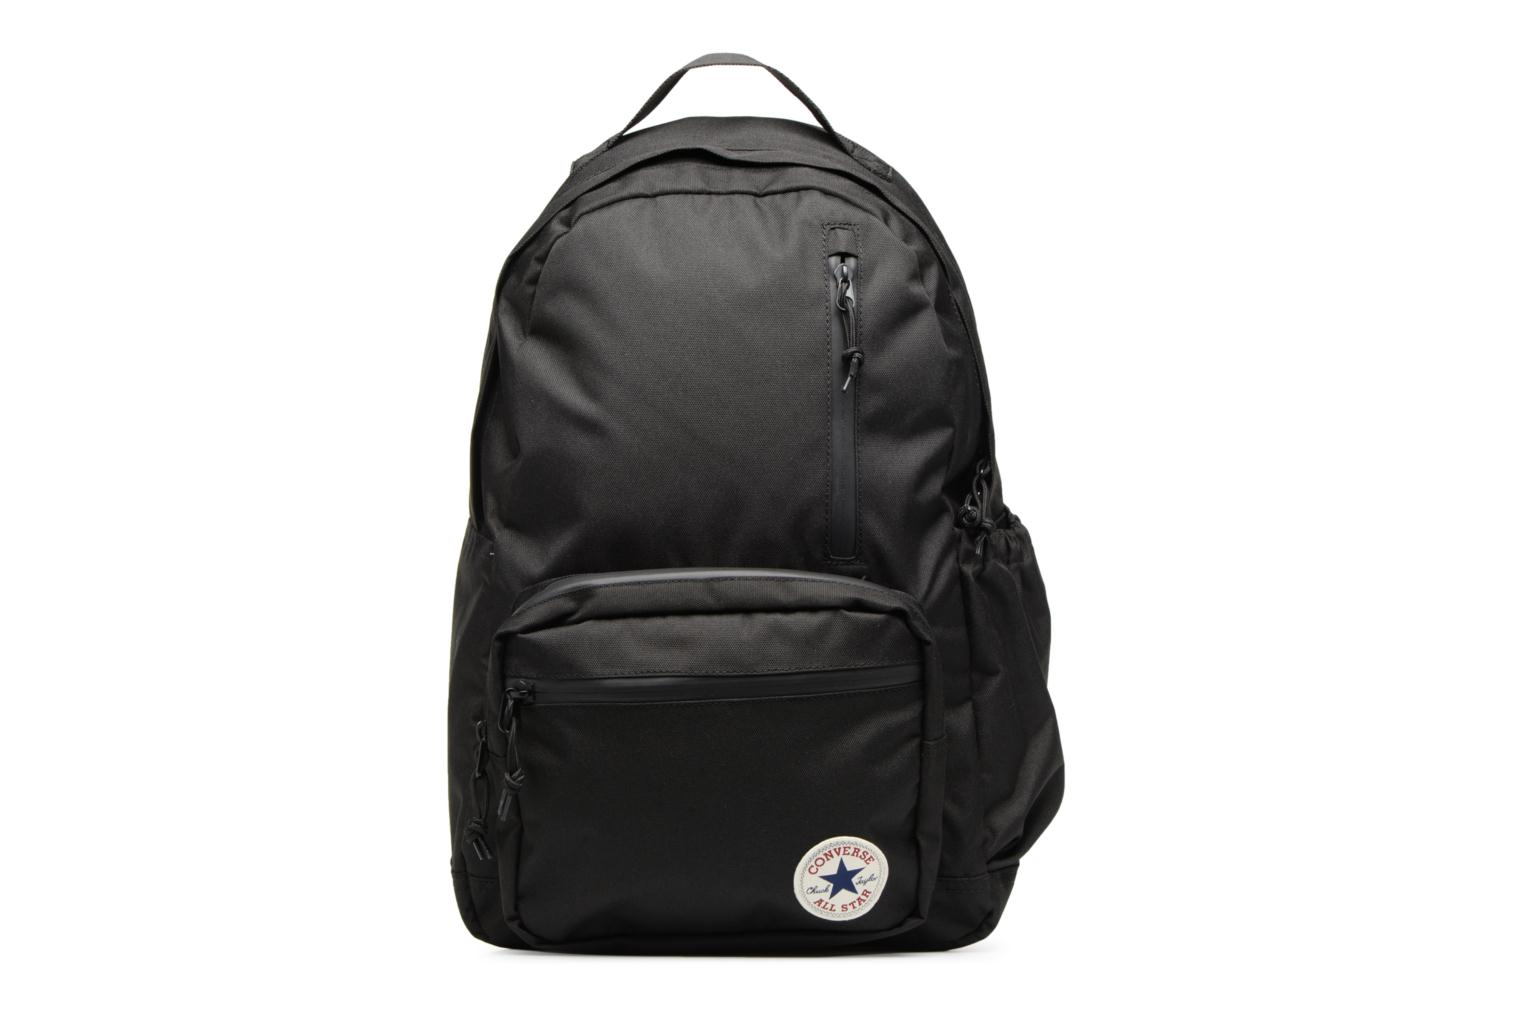 7adf0d8aac5 ... Converse Go Backpack Black detailed view Pair view lowest price 747cc  2321a  Converse Go Backpack buy online 606e7 59983  Converse Chuck Taylor  All Star ...